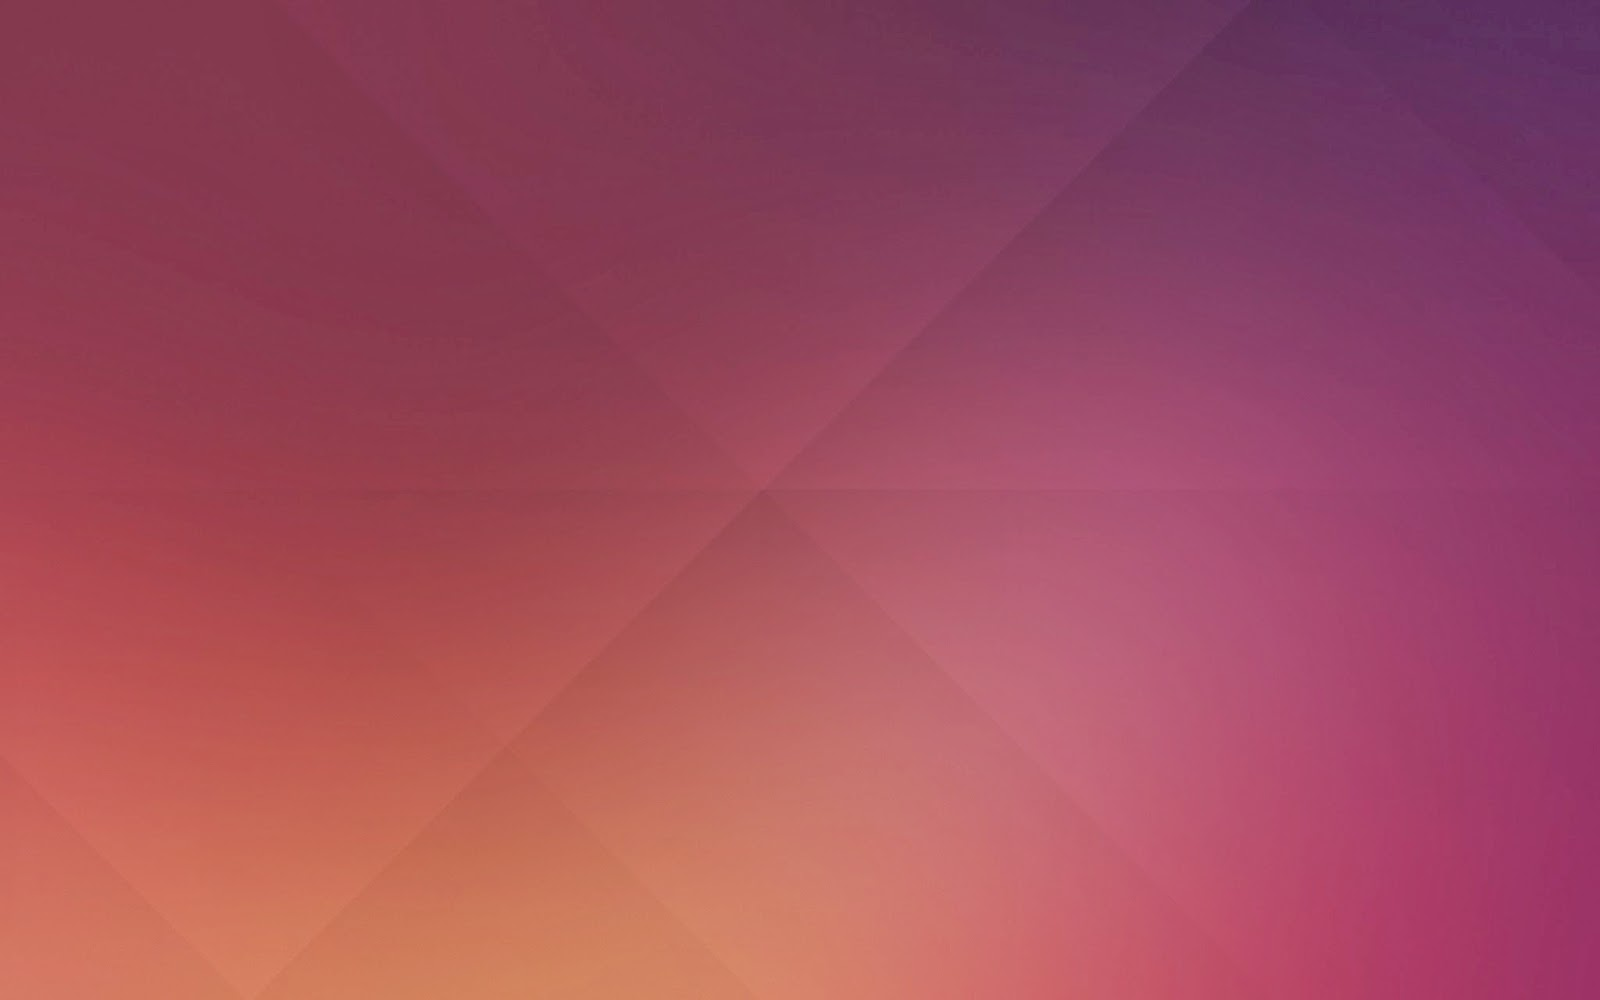 The default background of Ubuntu 1404 LinuxXcommand 1600x1000